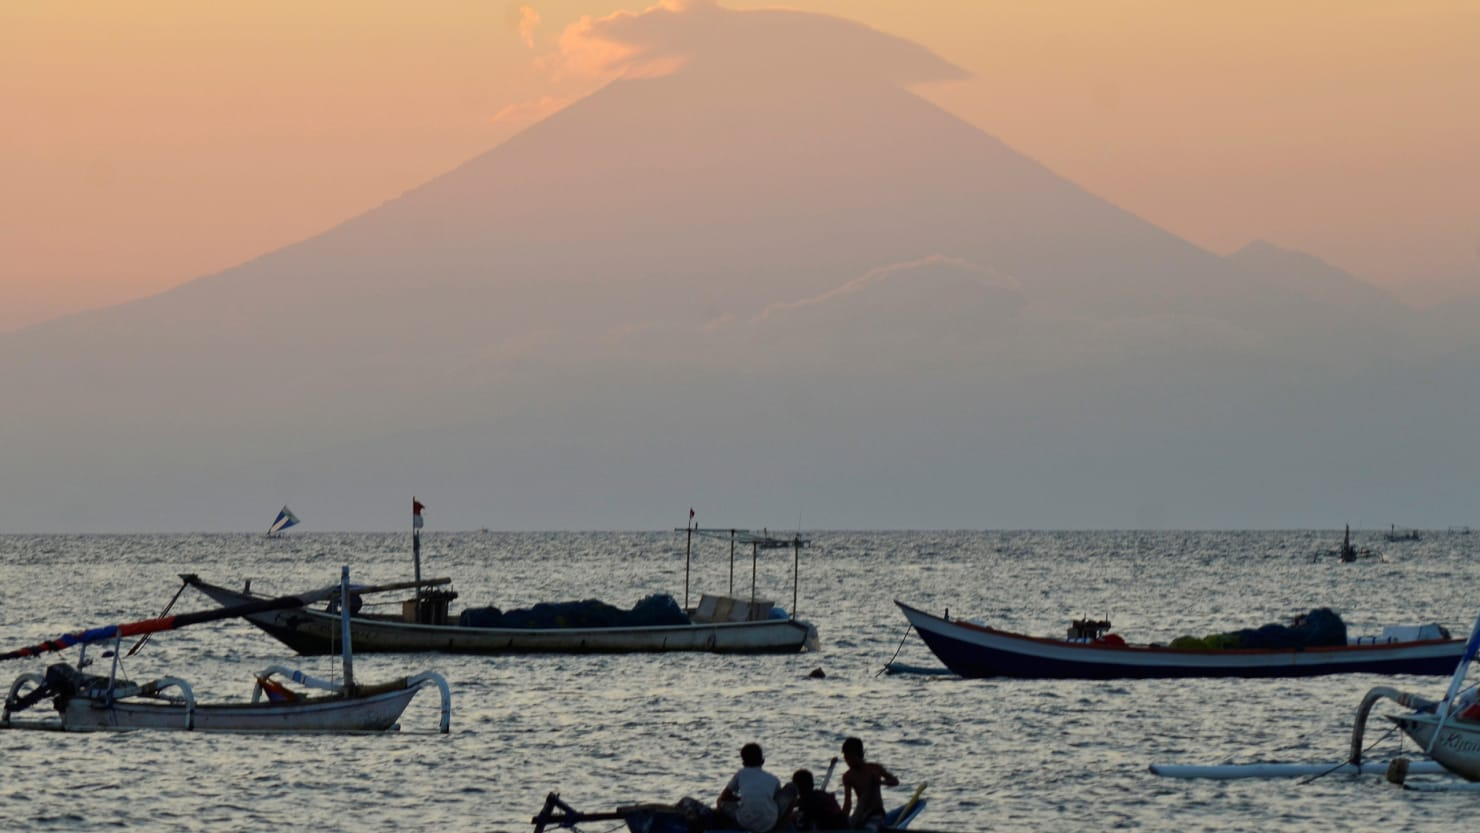 Tremors from Mount Agung have led Indonesian scientists to believe it may erupt for the first time in more than 50 years, forcing residents out amid heightened travel warnings.